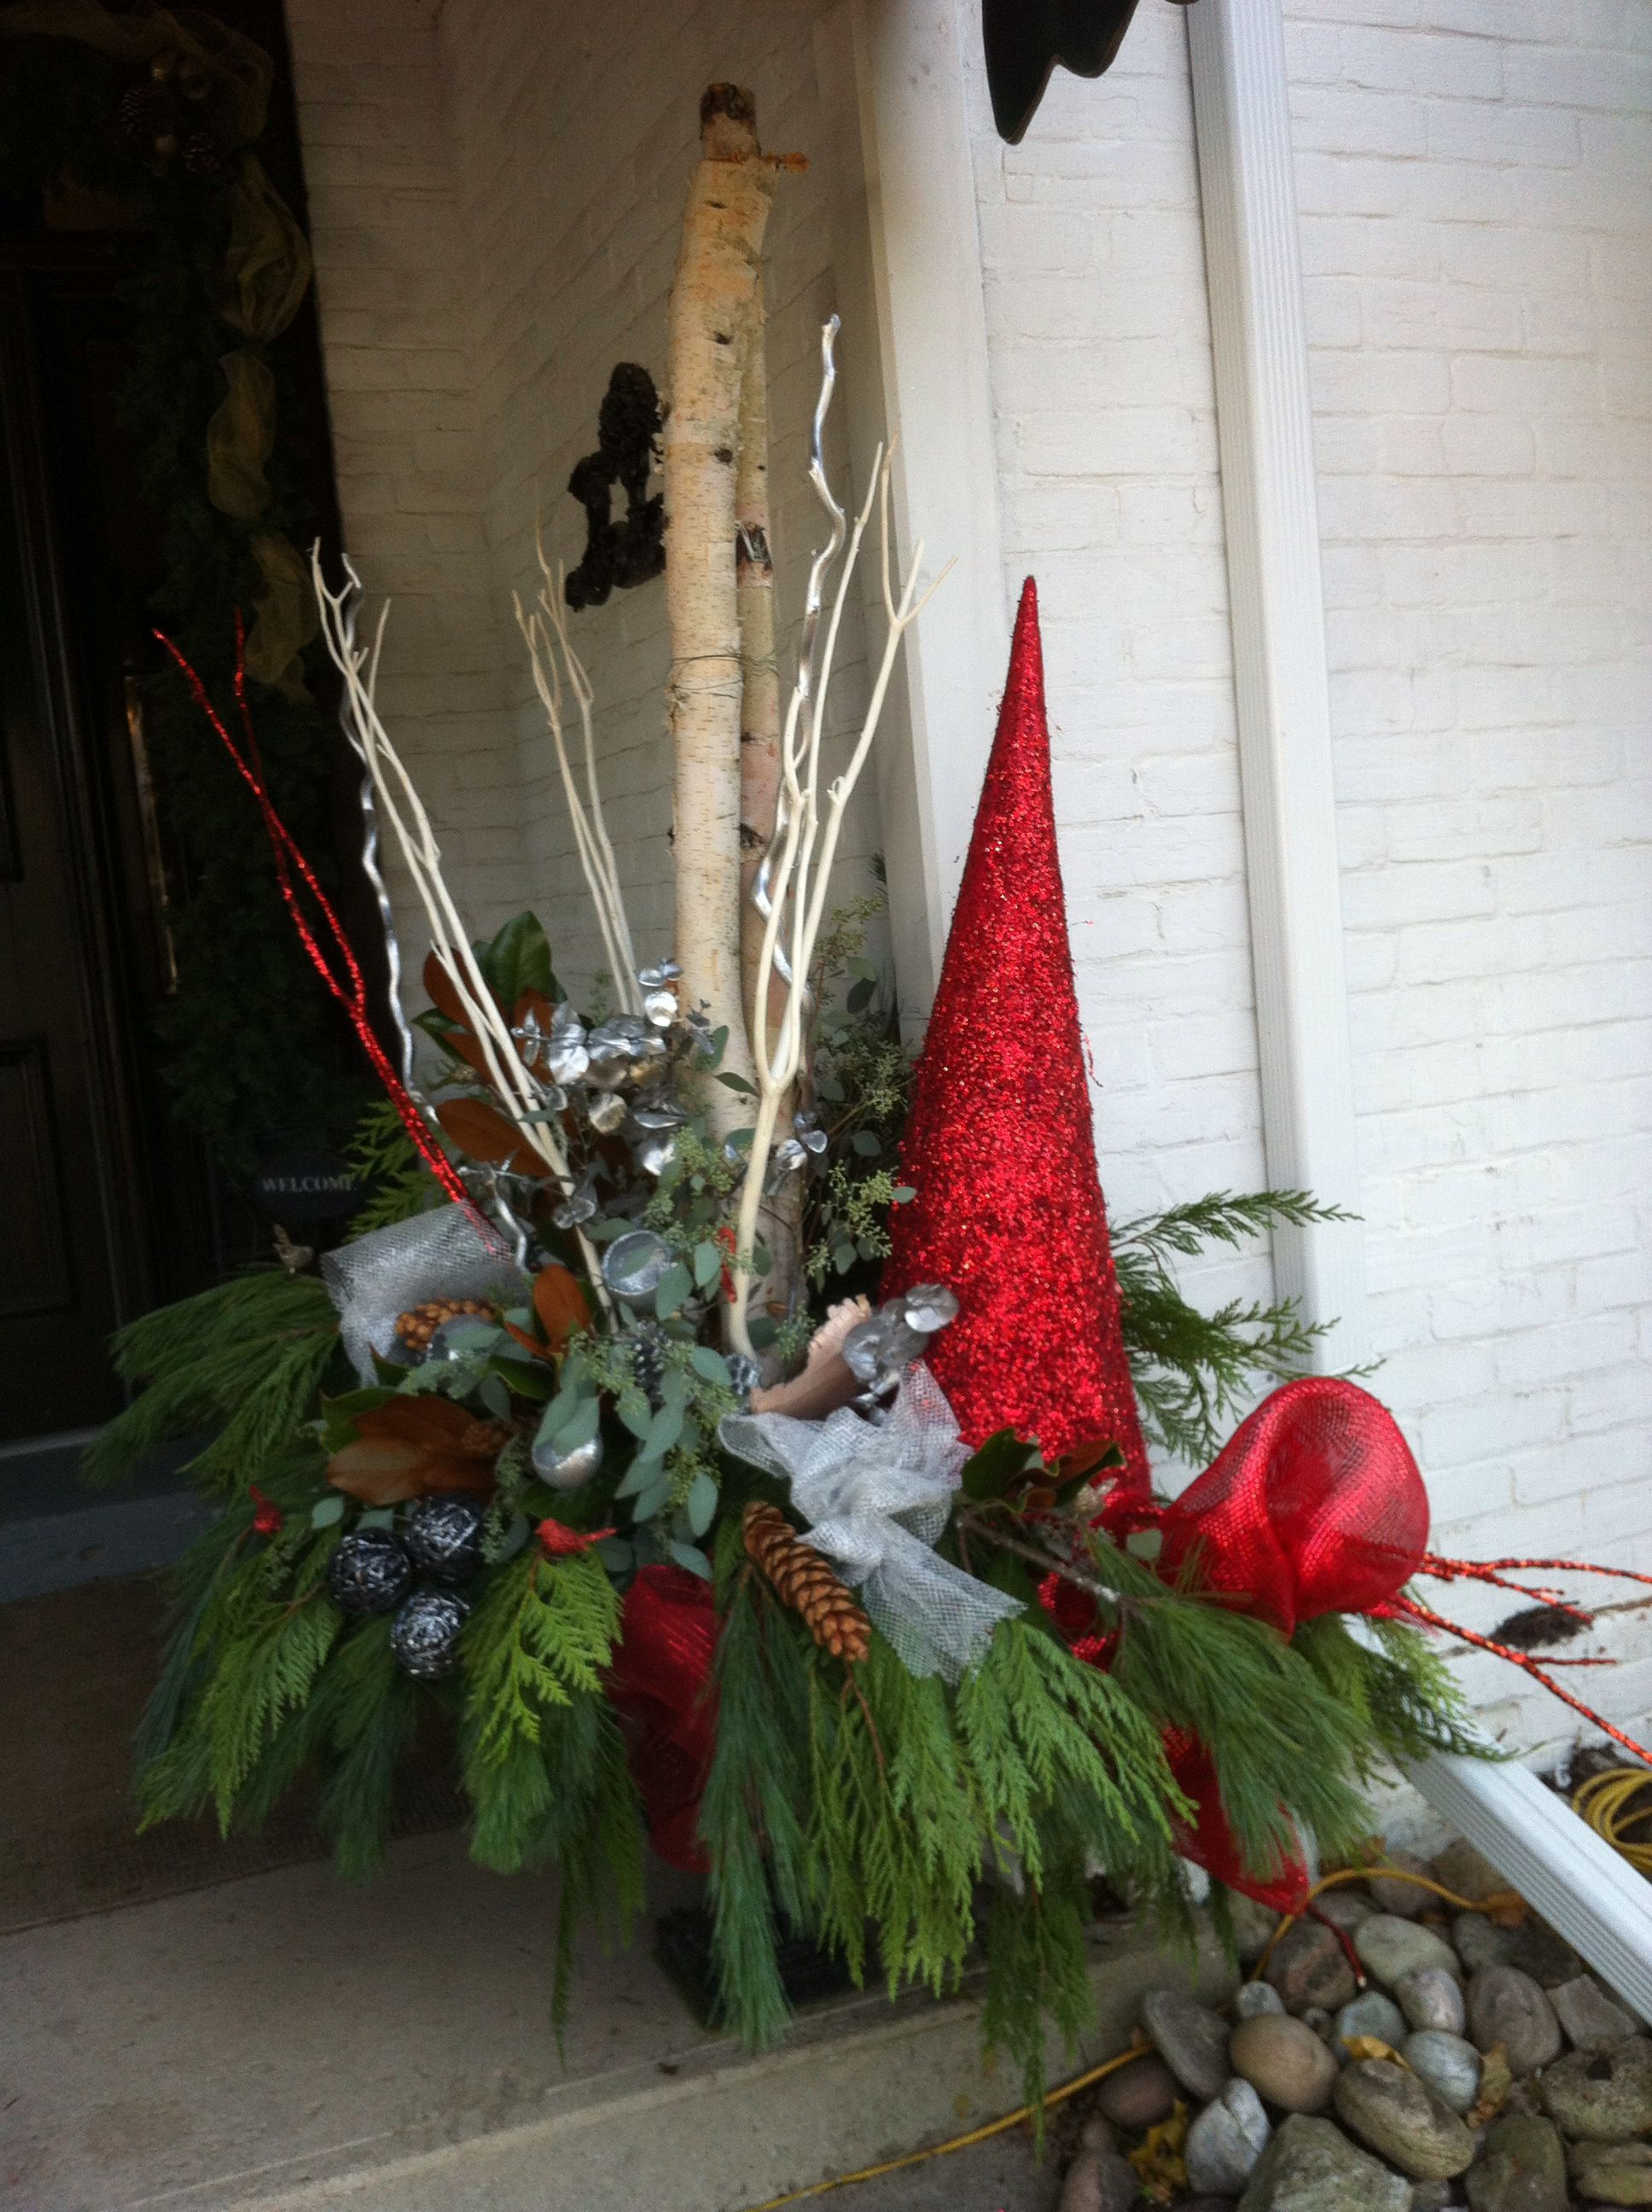 Urn Decor Enchanting Christmas Urn Decor At The Spa Romantic Garden Theme  Christmas Decorating Inspiration